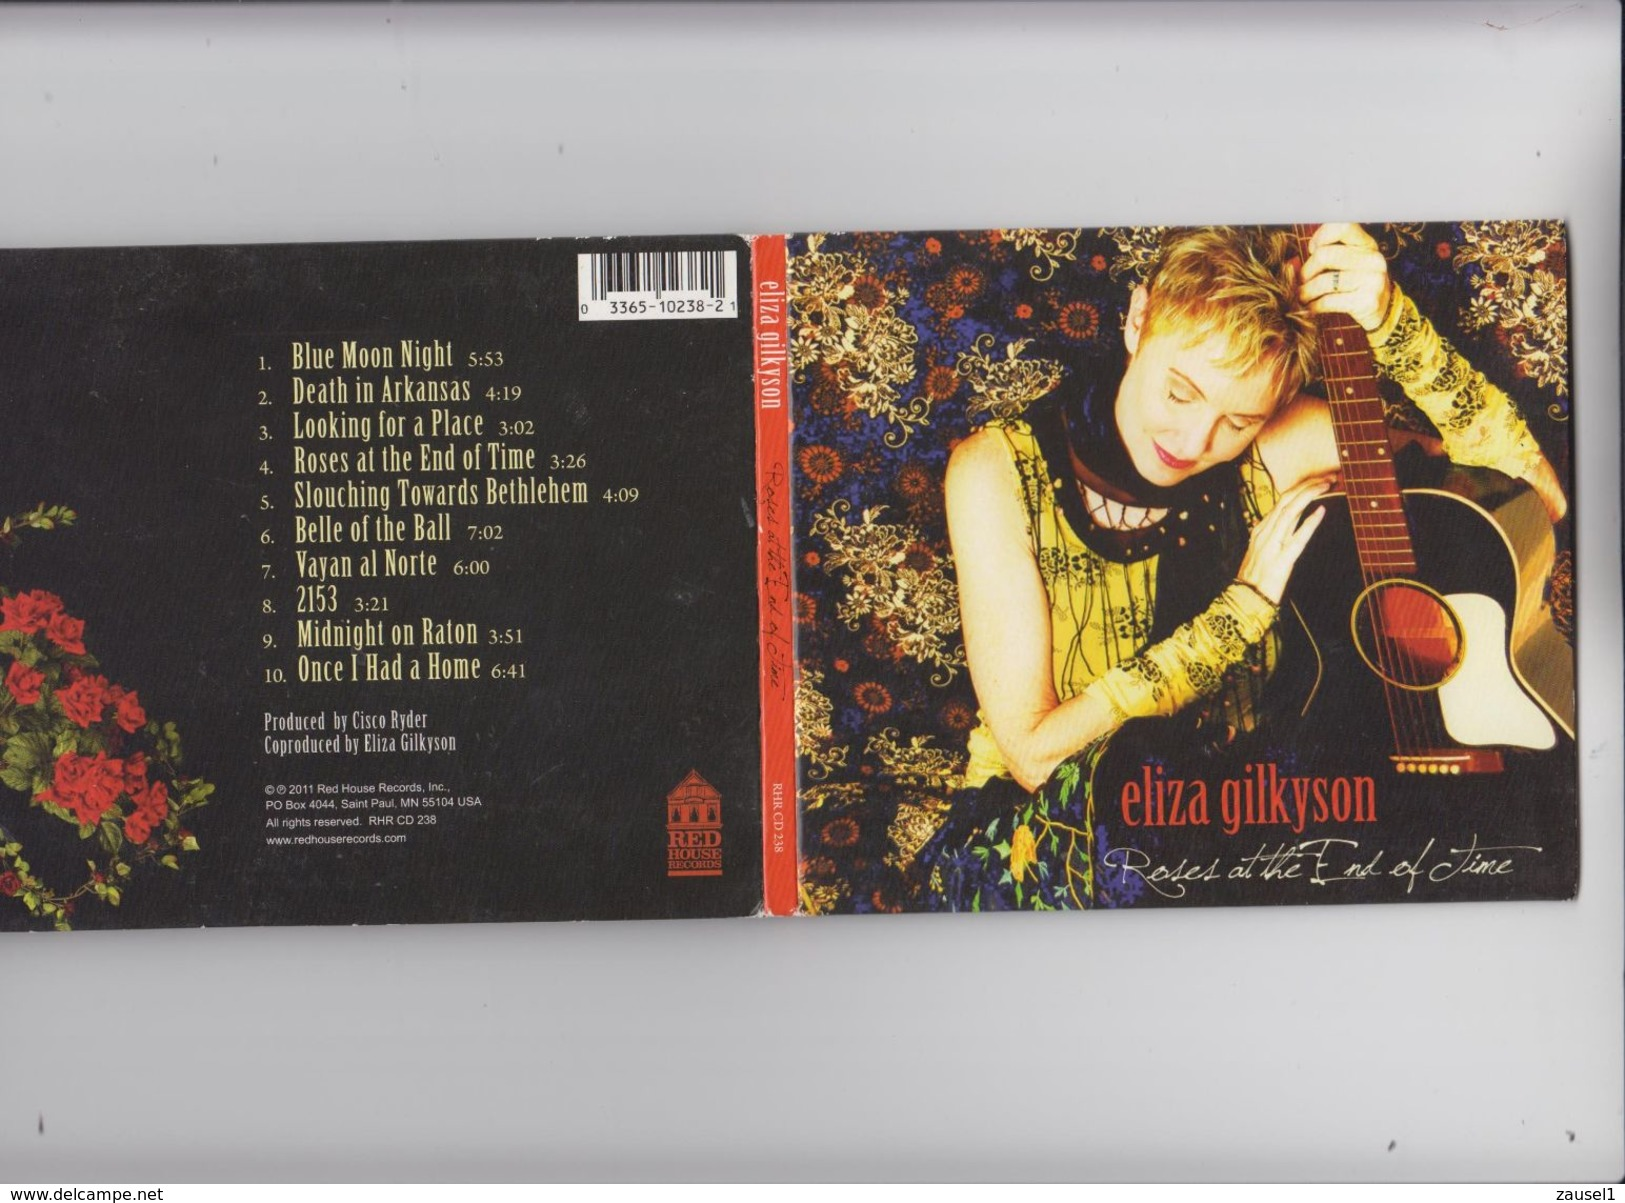 Eliza Gilkyson - Roses At The End Of Time - Original CD - Country & Folk